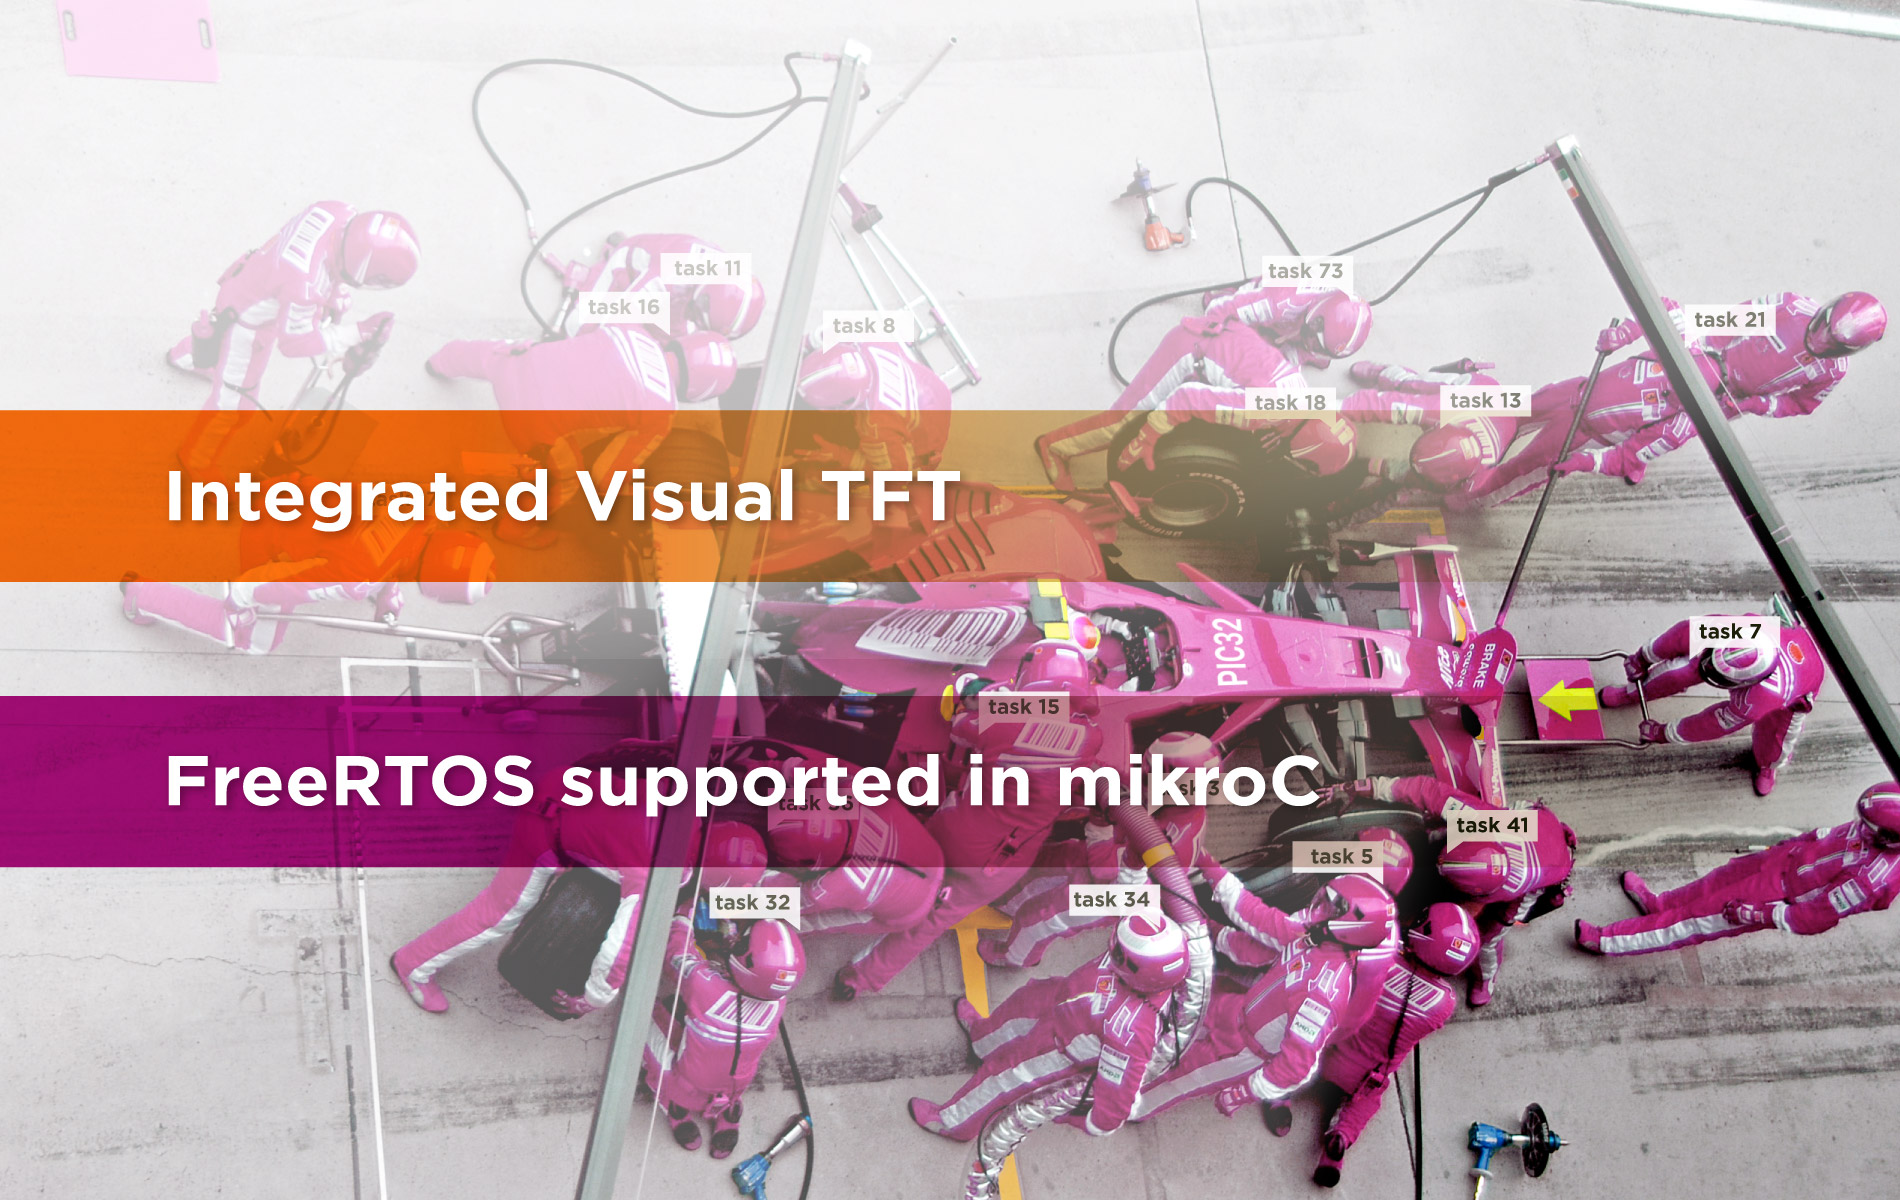 PIC32 compilers - Visual TFT integrated, FreeRTOS support